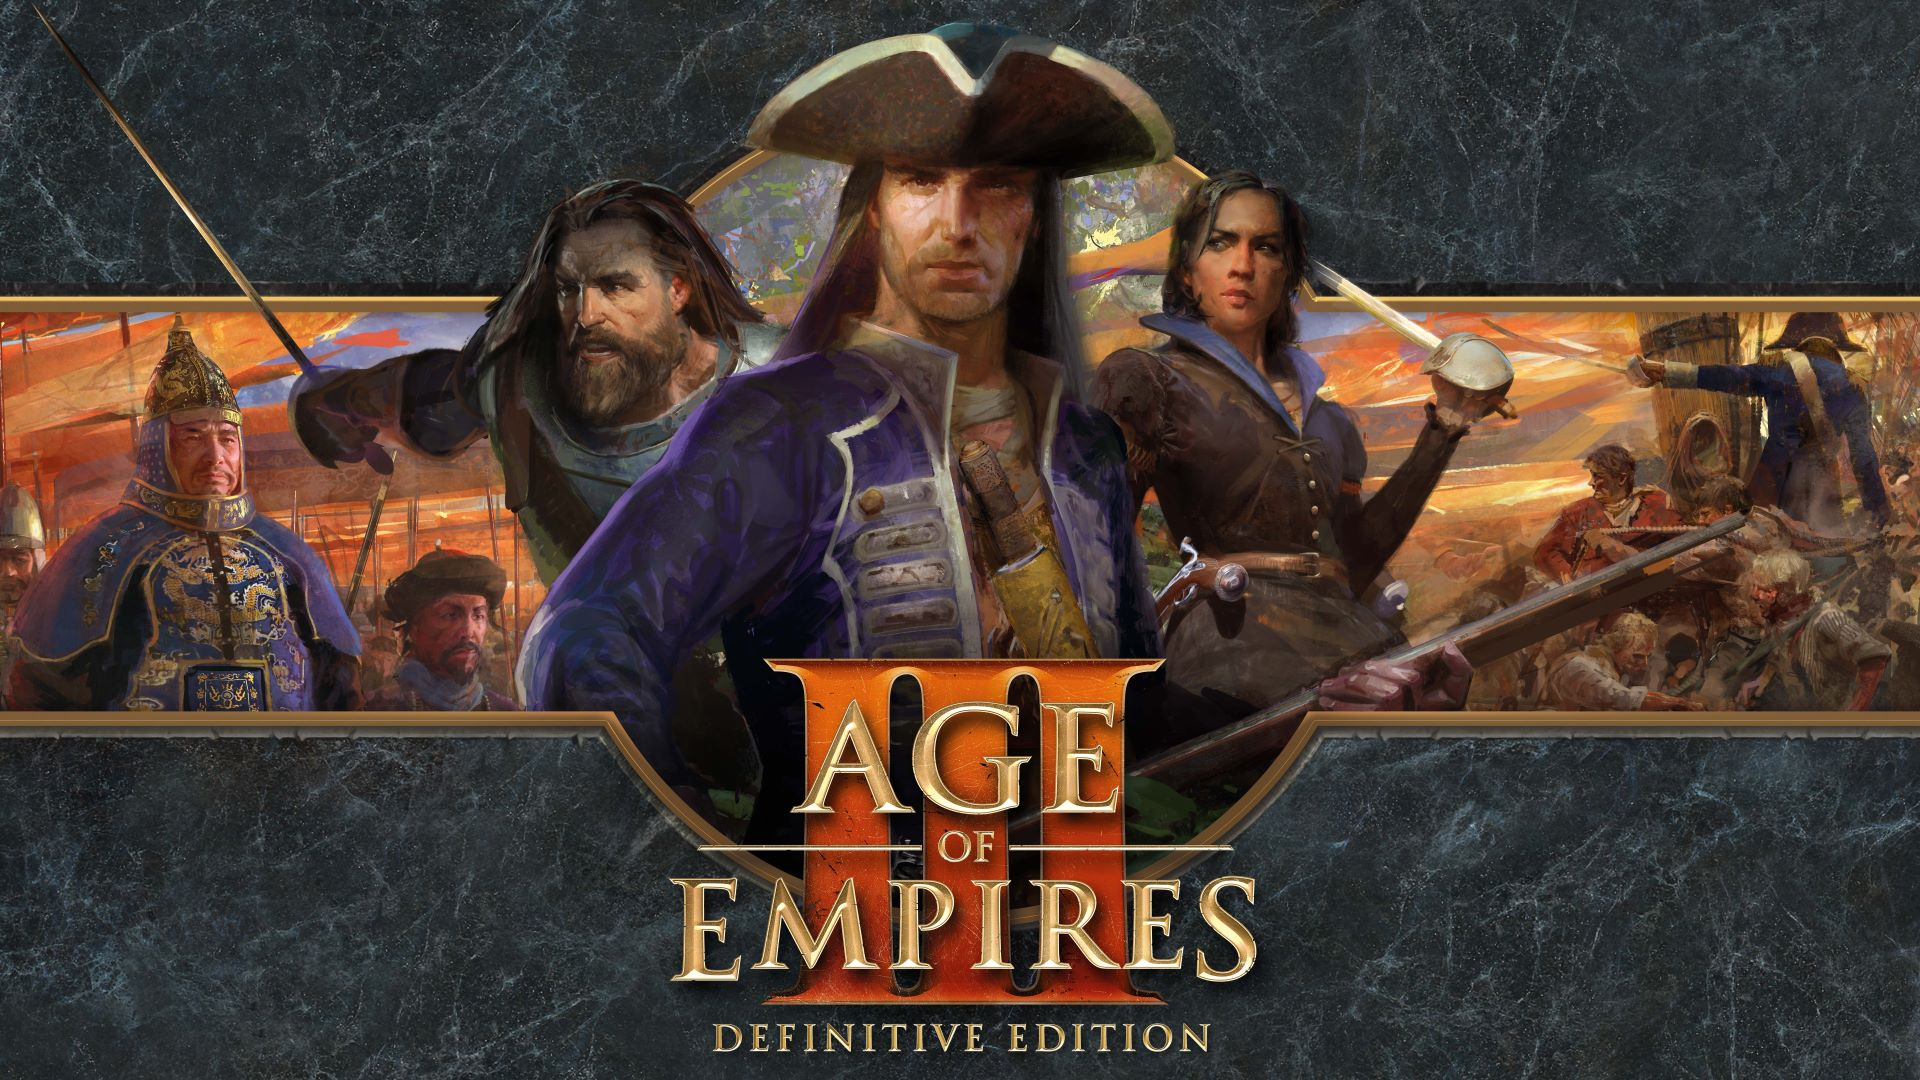 Video For Age of Empires III: Definitive Edition Out Now Worldwide!